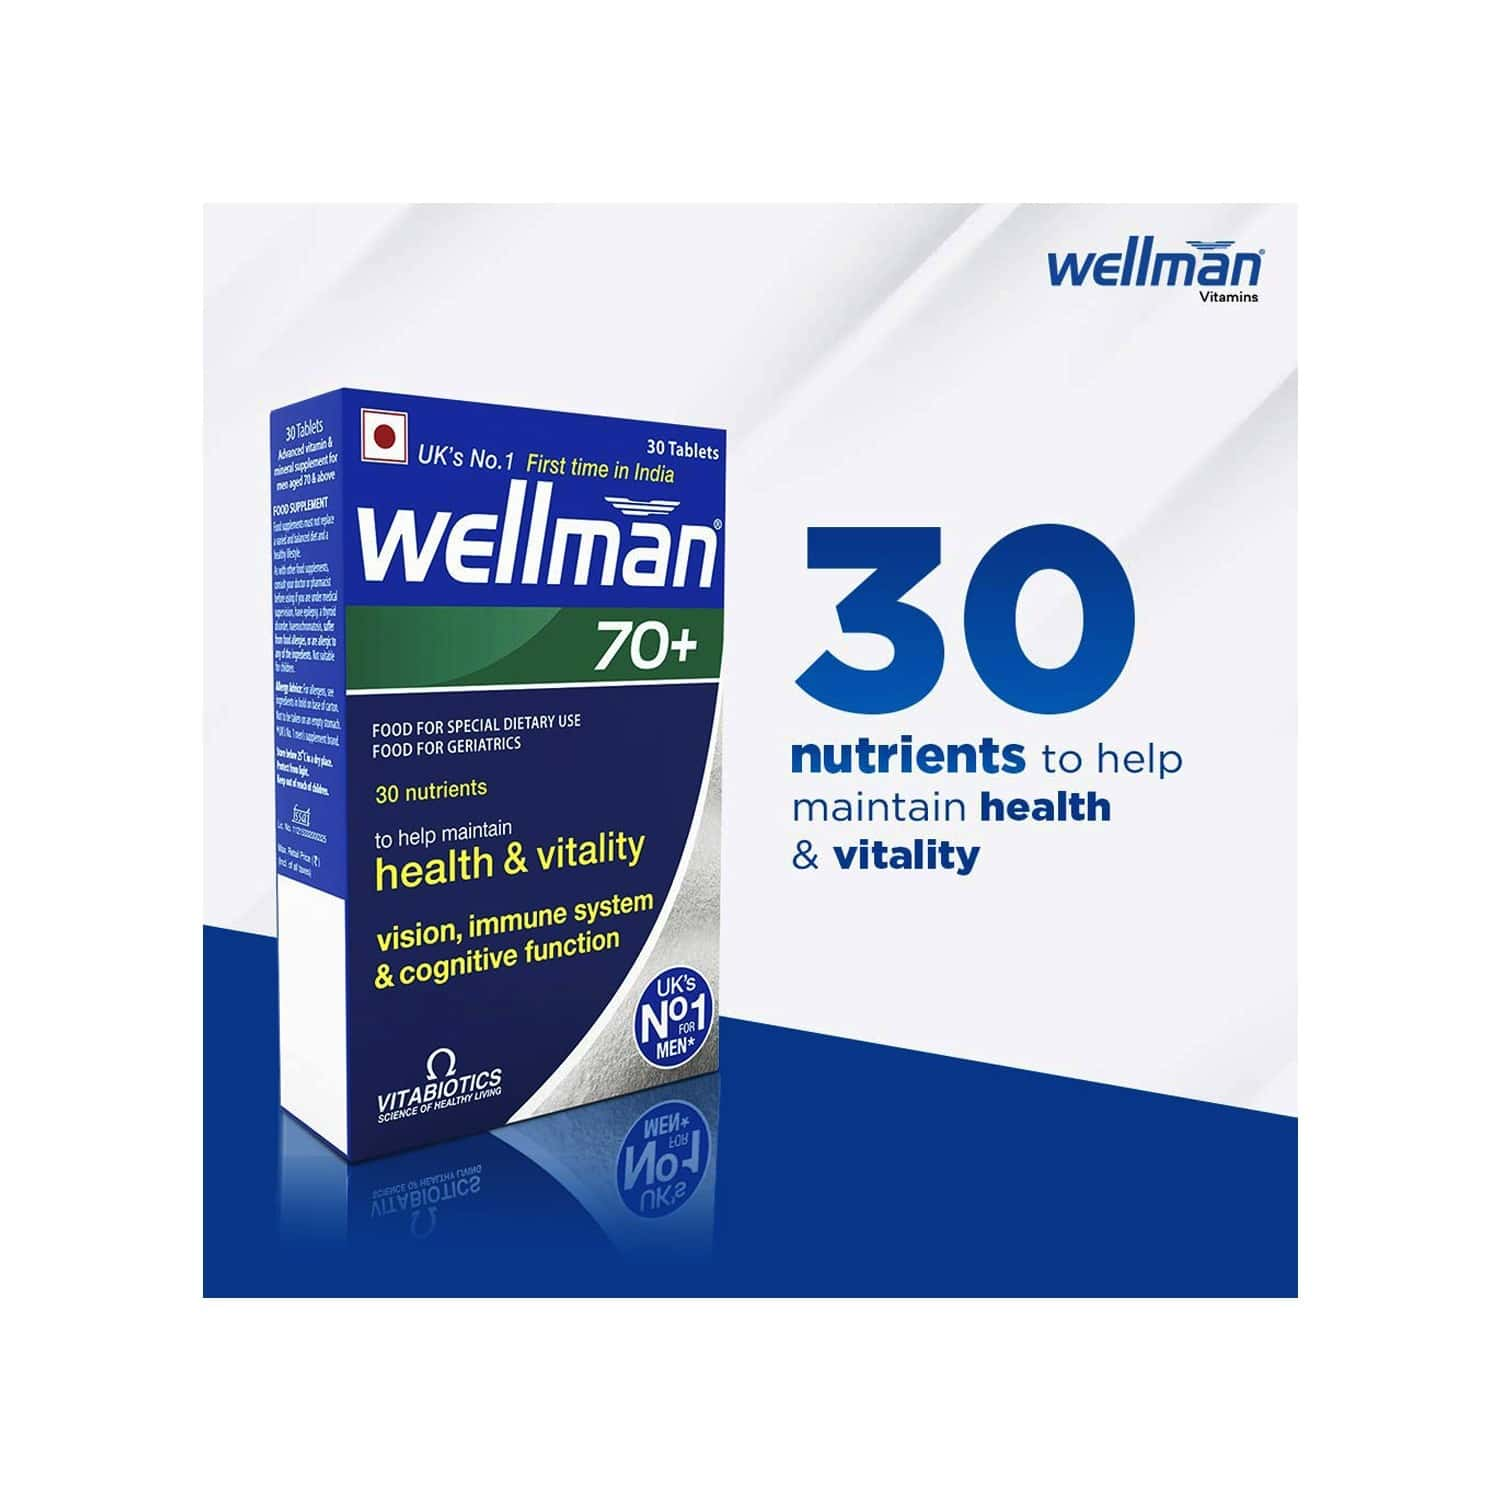 Wellman 70+ - Health Supplements (30 Nutrients) With Wellman 30 Tablet Free